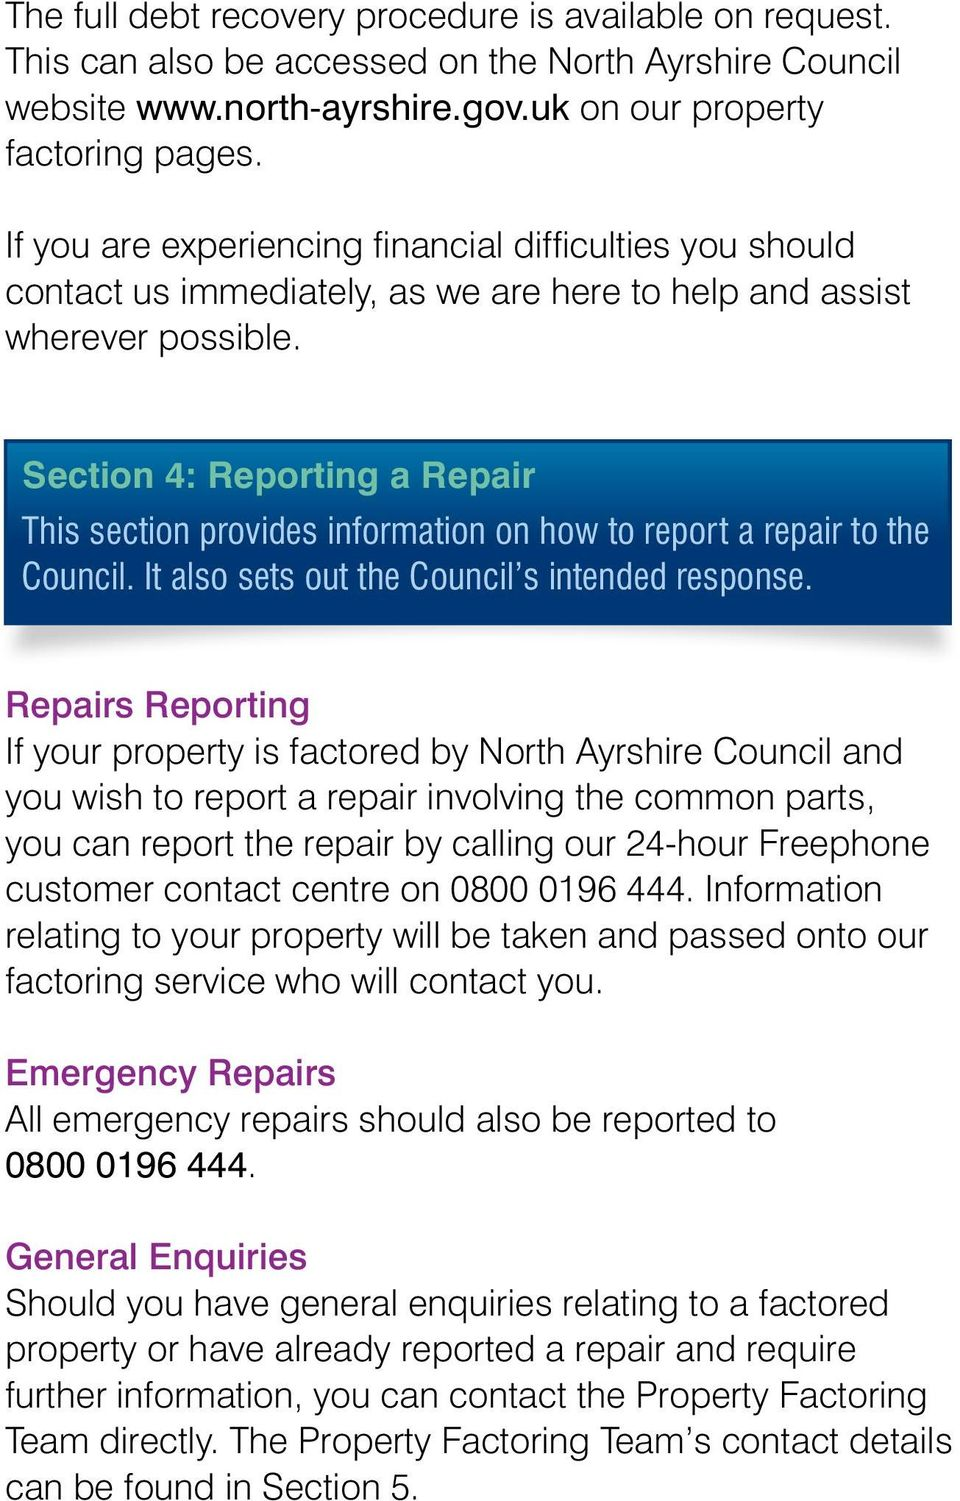 Section 4: Reporting a Repair This section provides information on how to report a repair to the Council. It also sets out the Council s intended response.